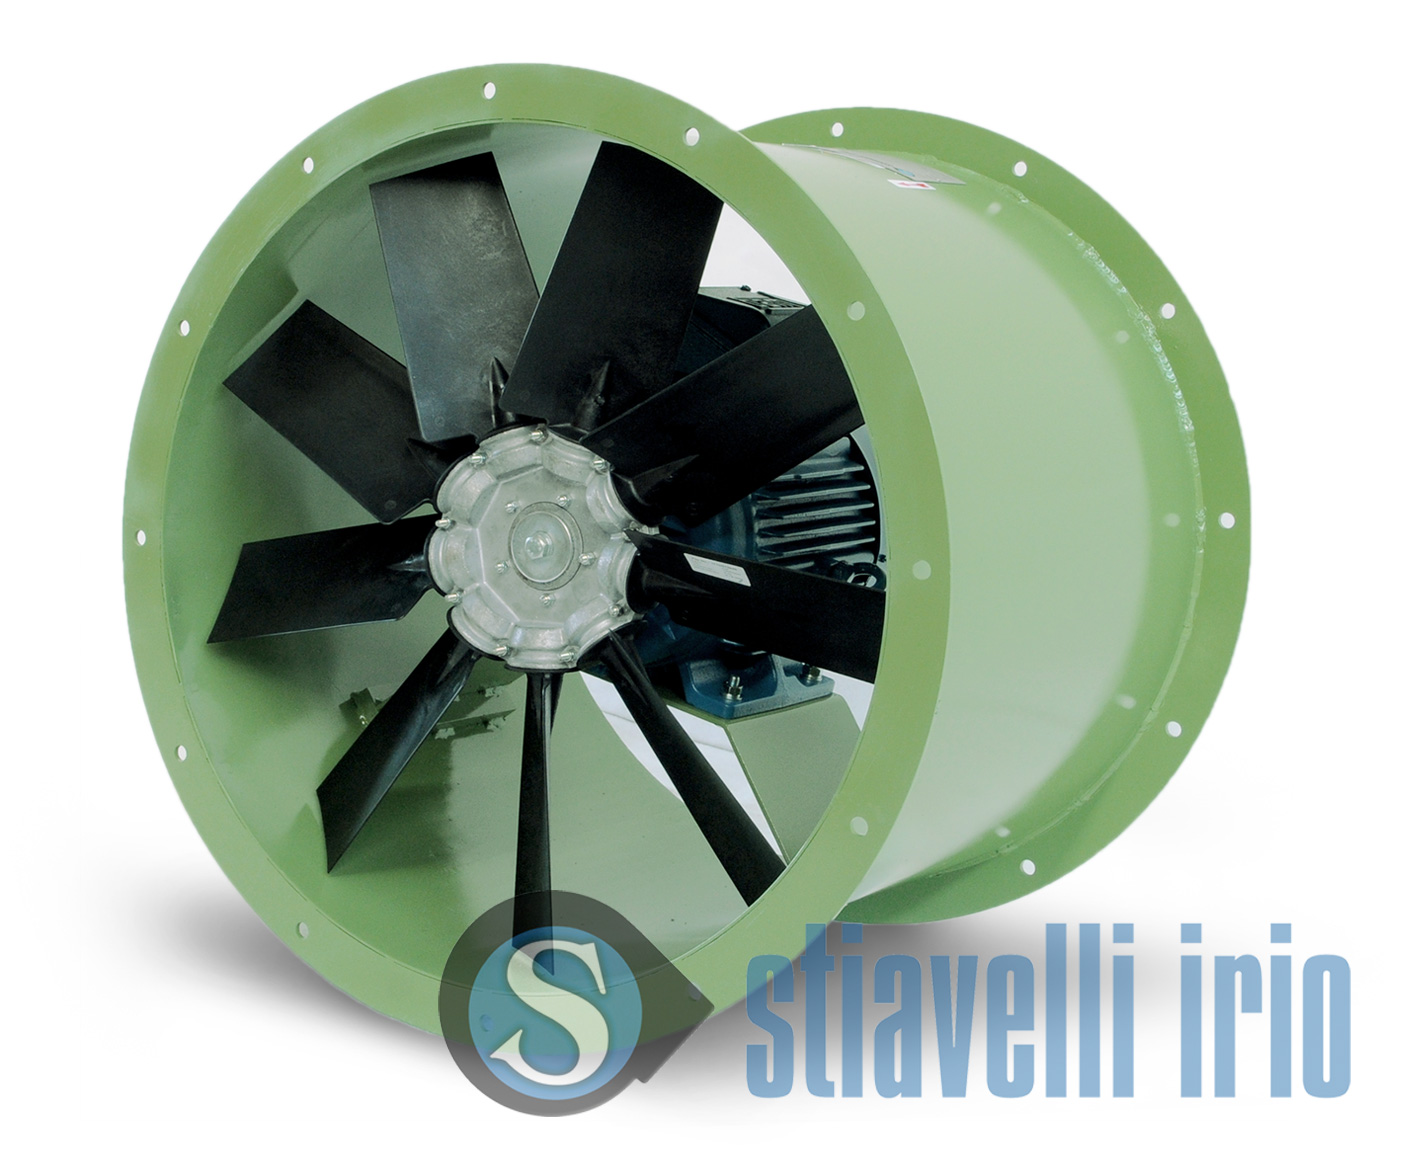 Yevl Industrial Axial Duct Blowers Stiavelli Irio Srl